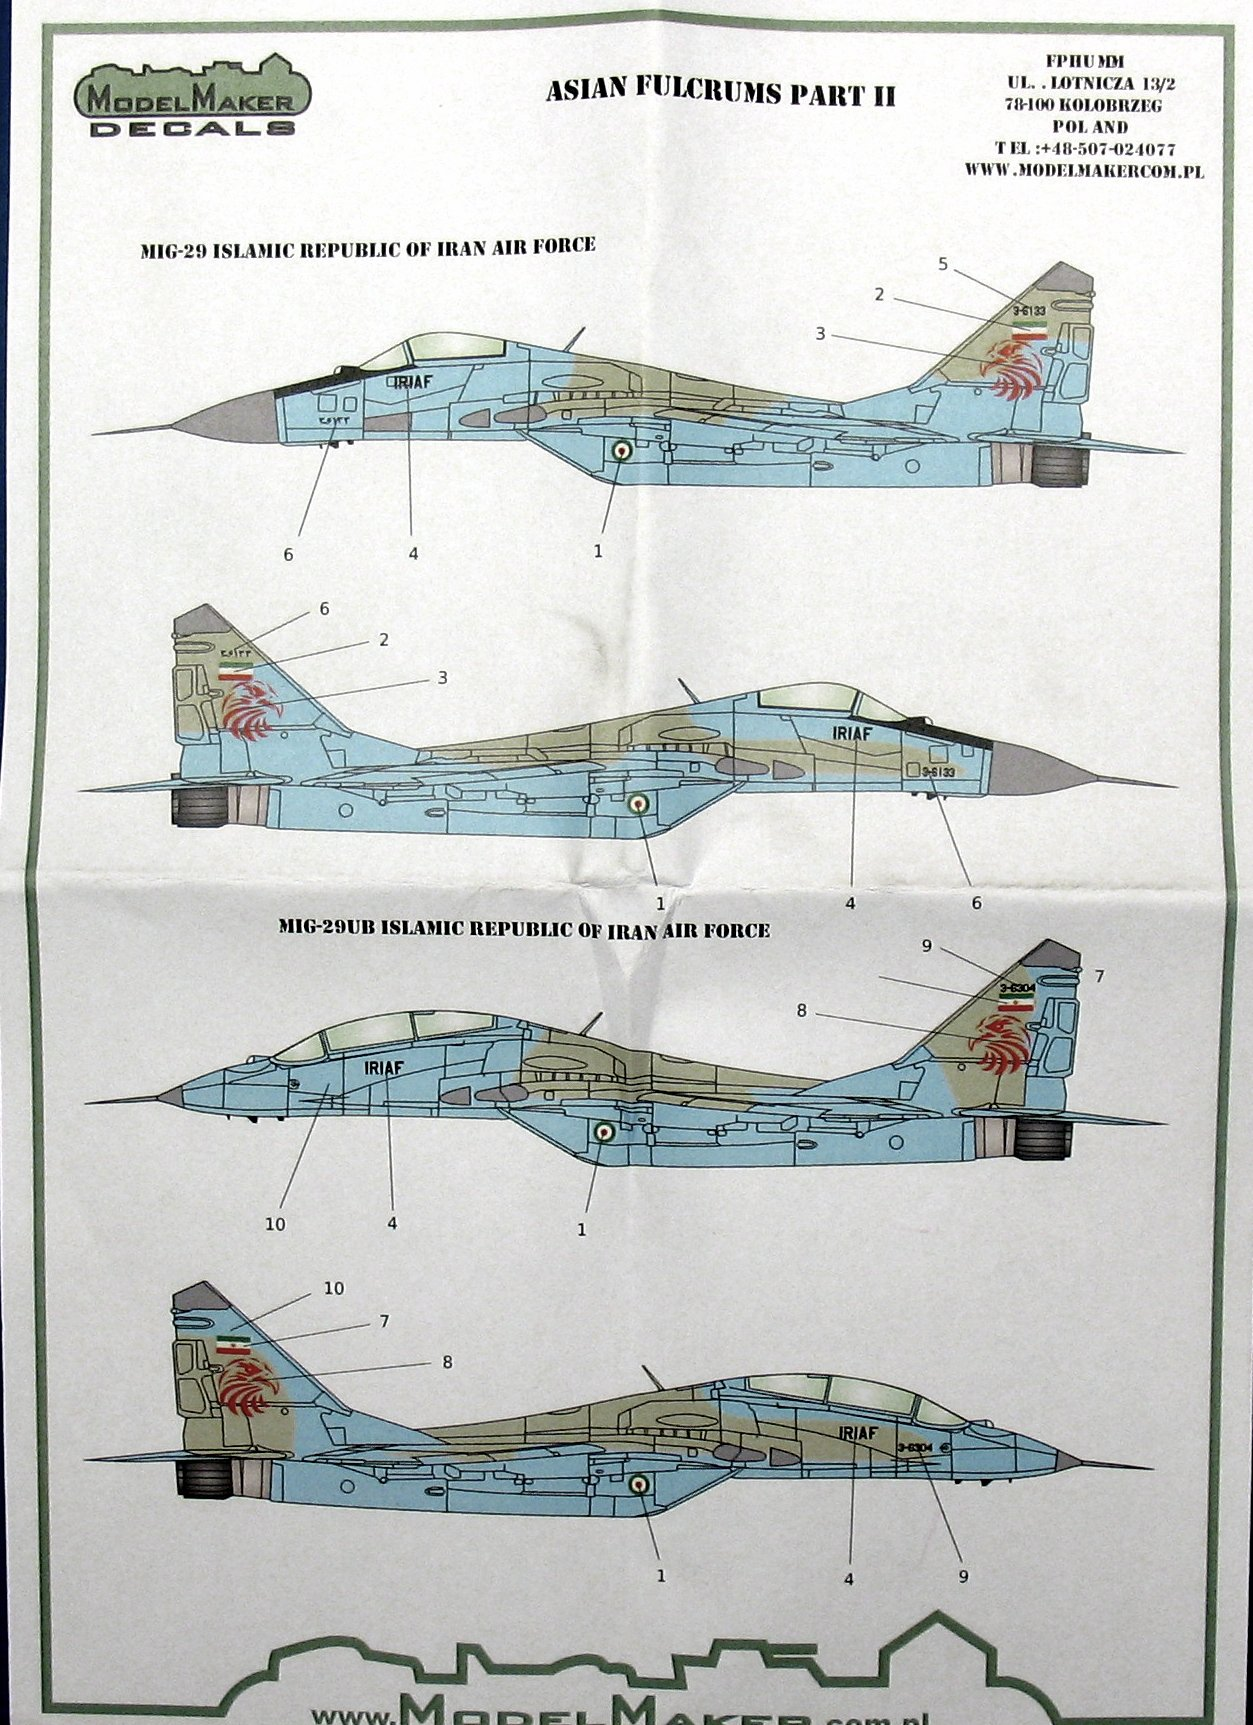 Model Maker Decals 1//72 MiG-29 FULCRUM ASIAN AIR FORCES Part 2